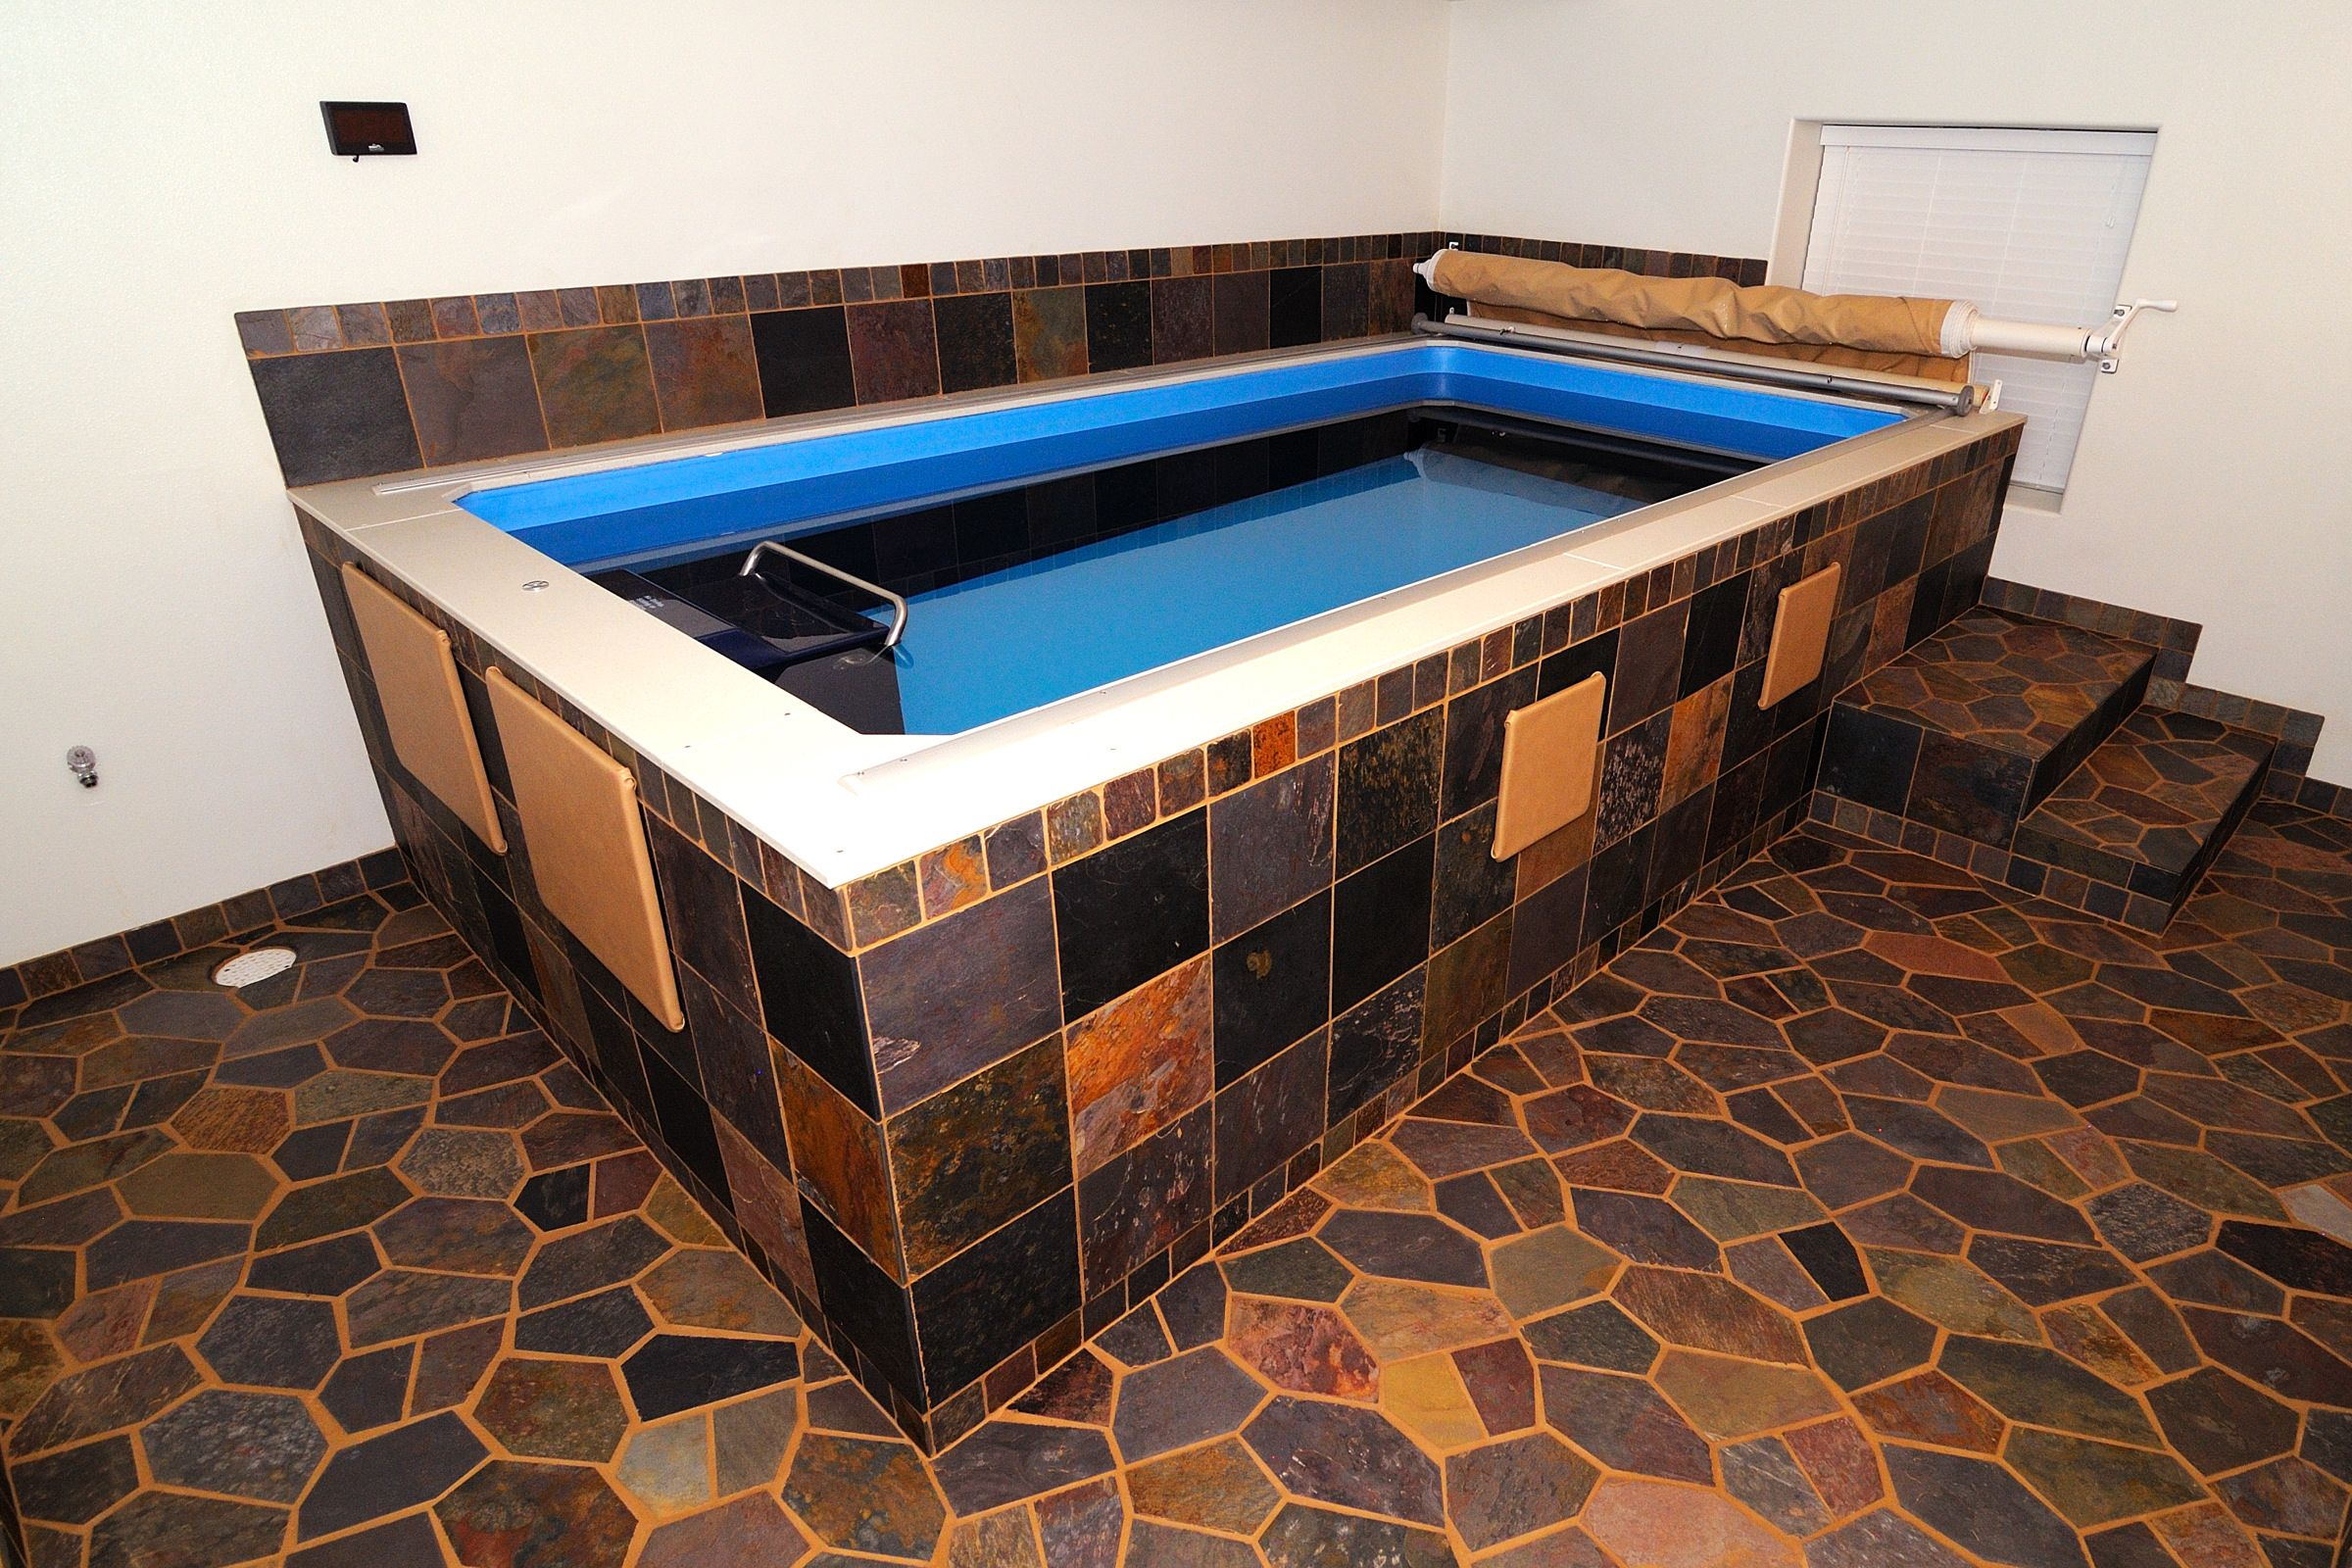 A Basement Transformed With An Endless Pool Skirted And Surrounded By Rich Onyx And Earth Tone Tiles In Geometric Patterns With I Endless Pool Swim Spa Pool